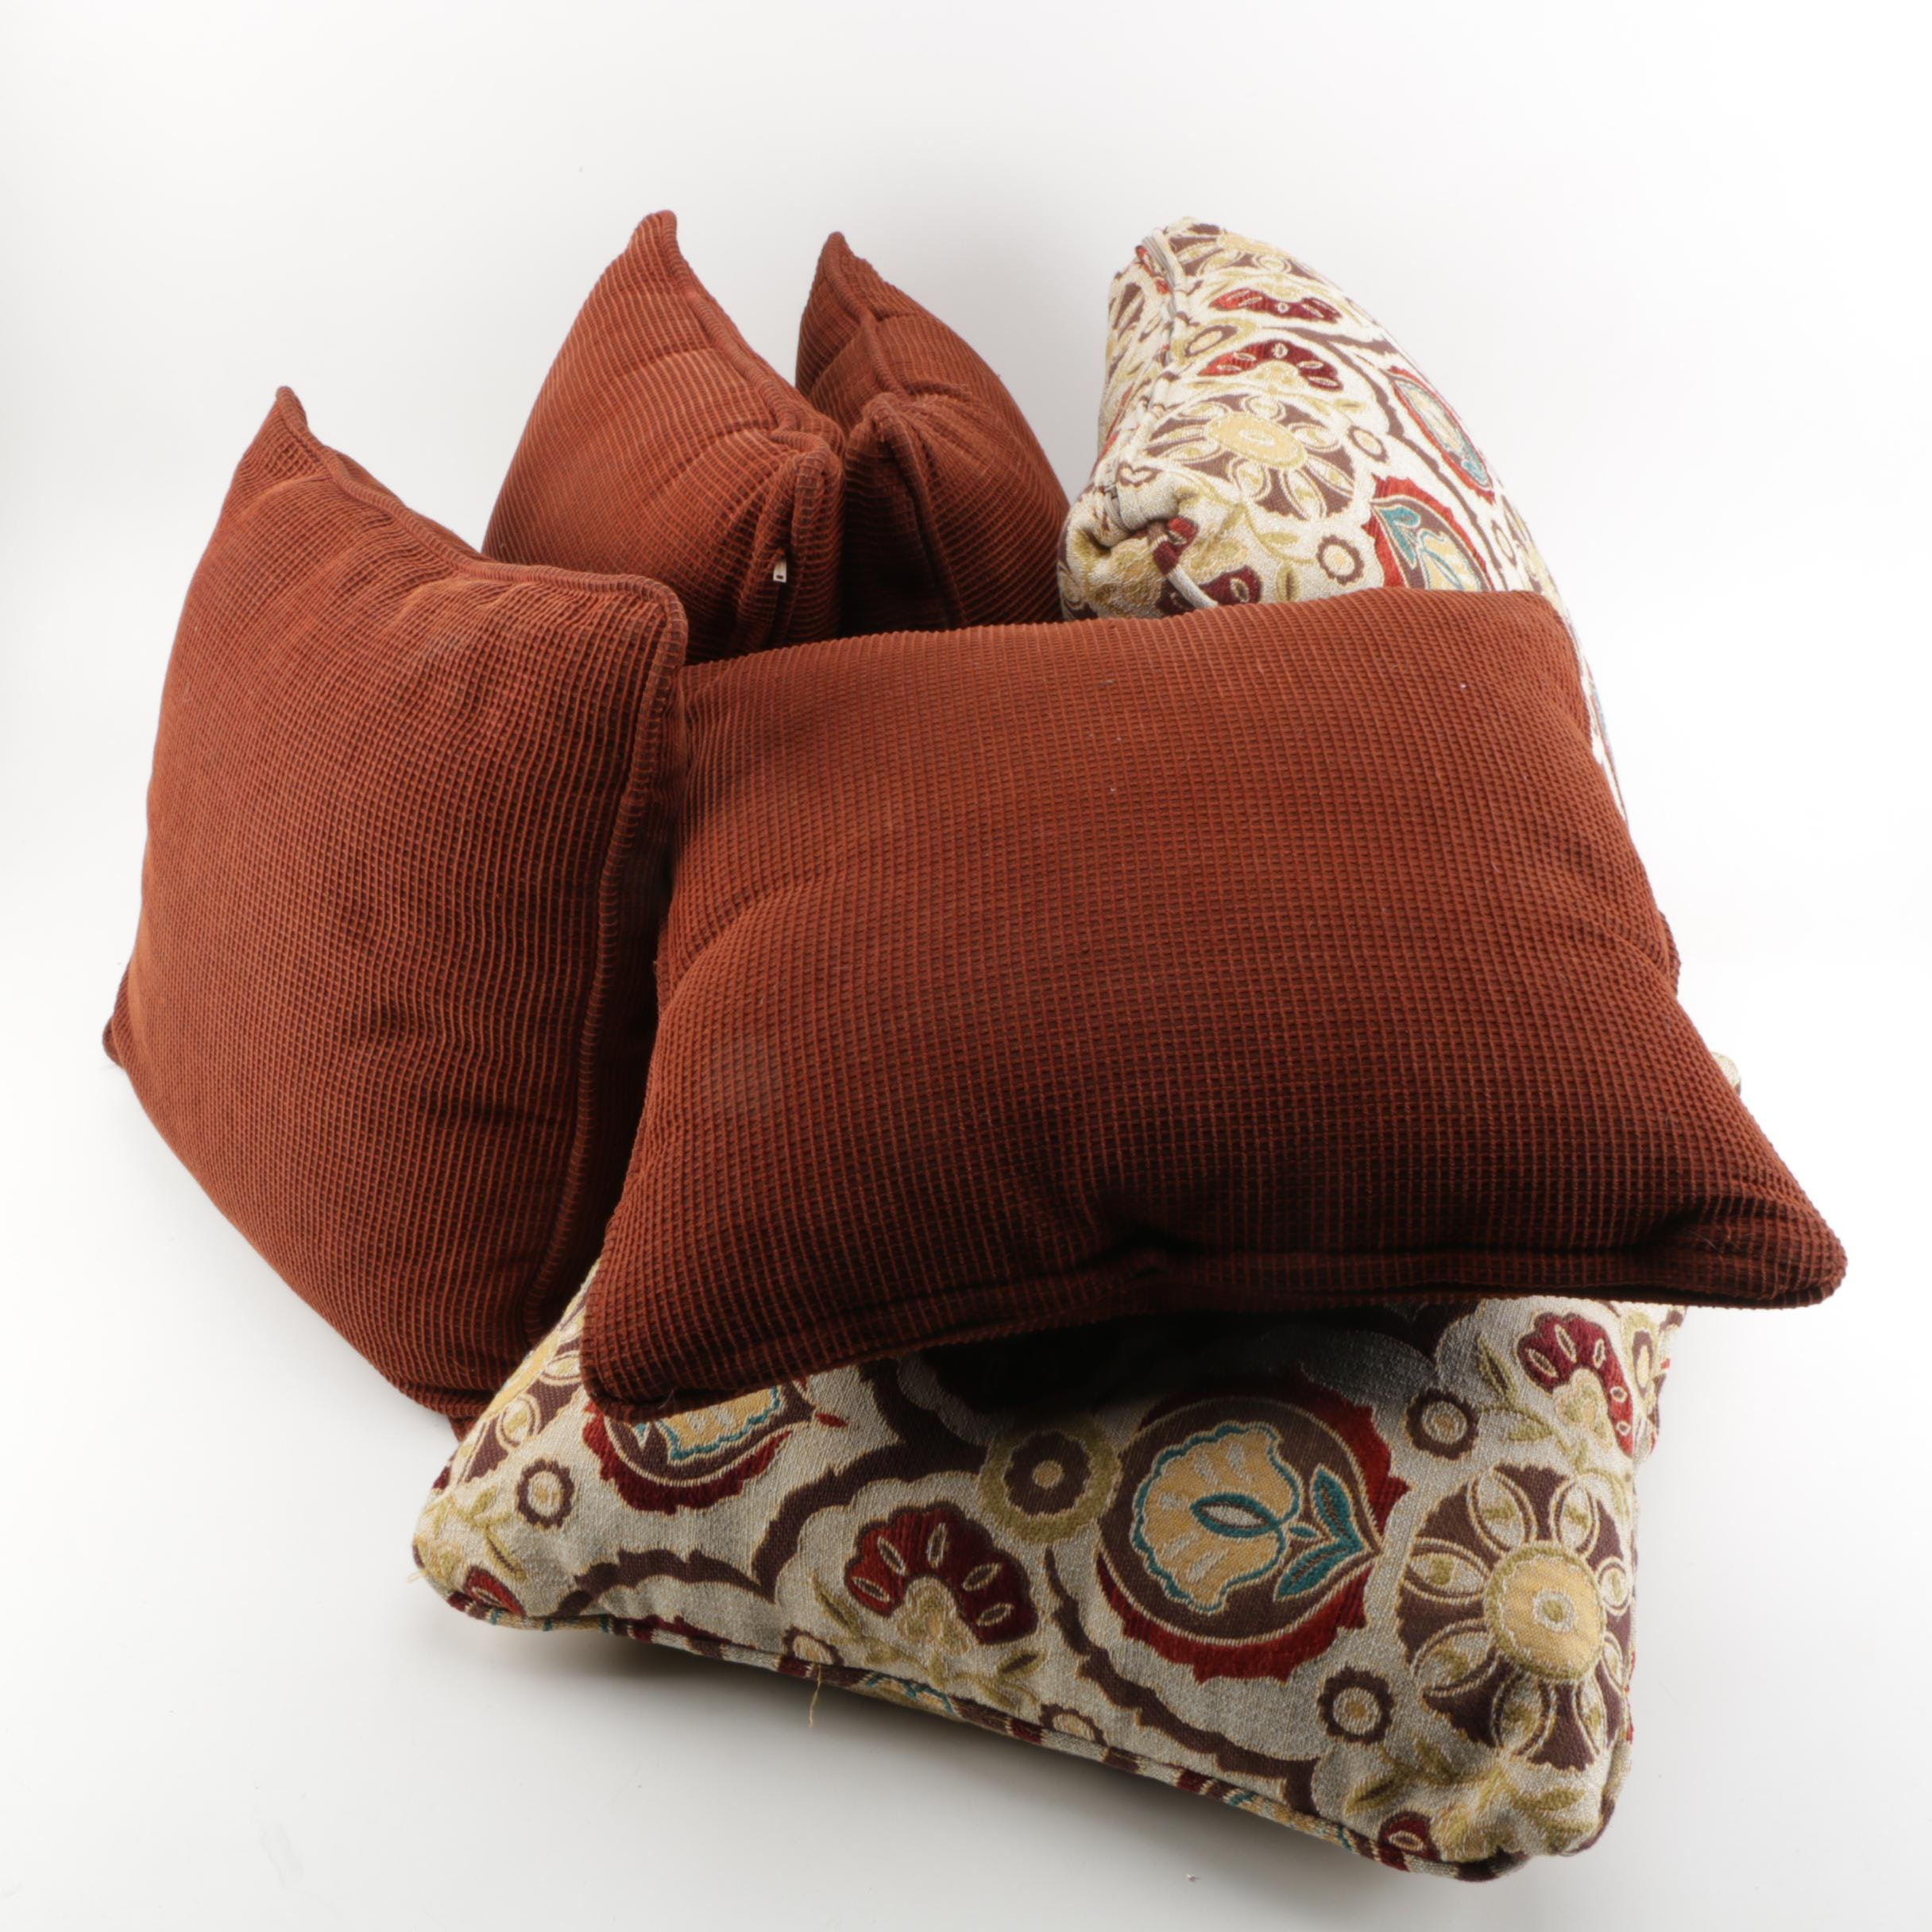 Floral and Rust-Colored Pillows